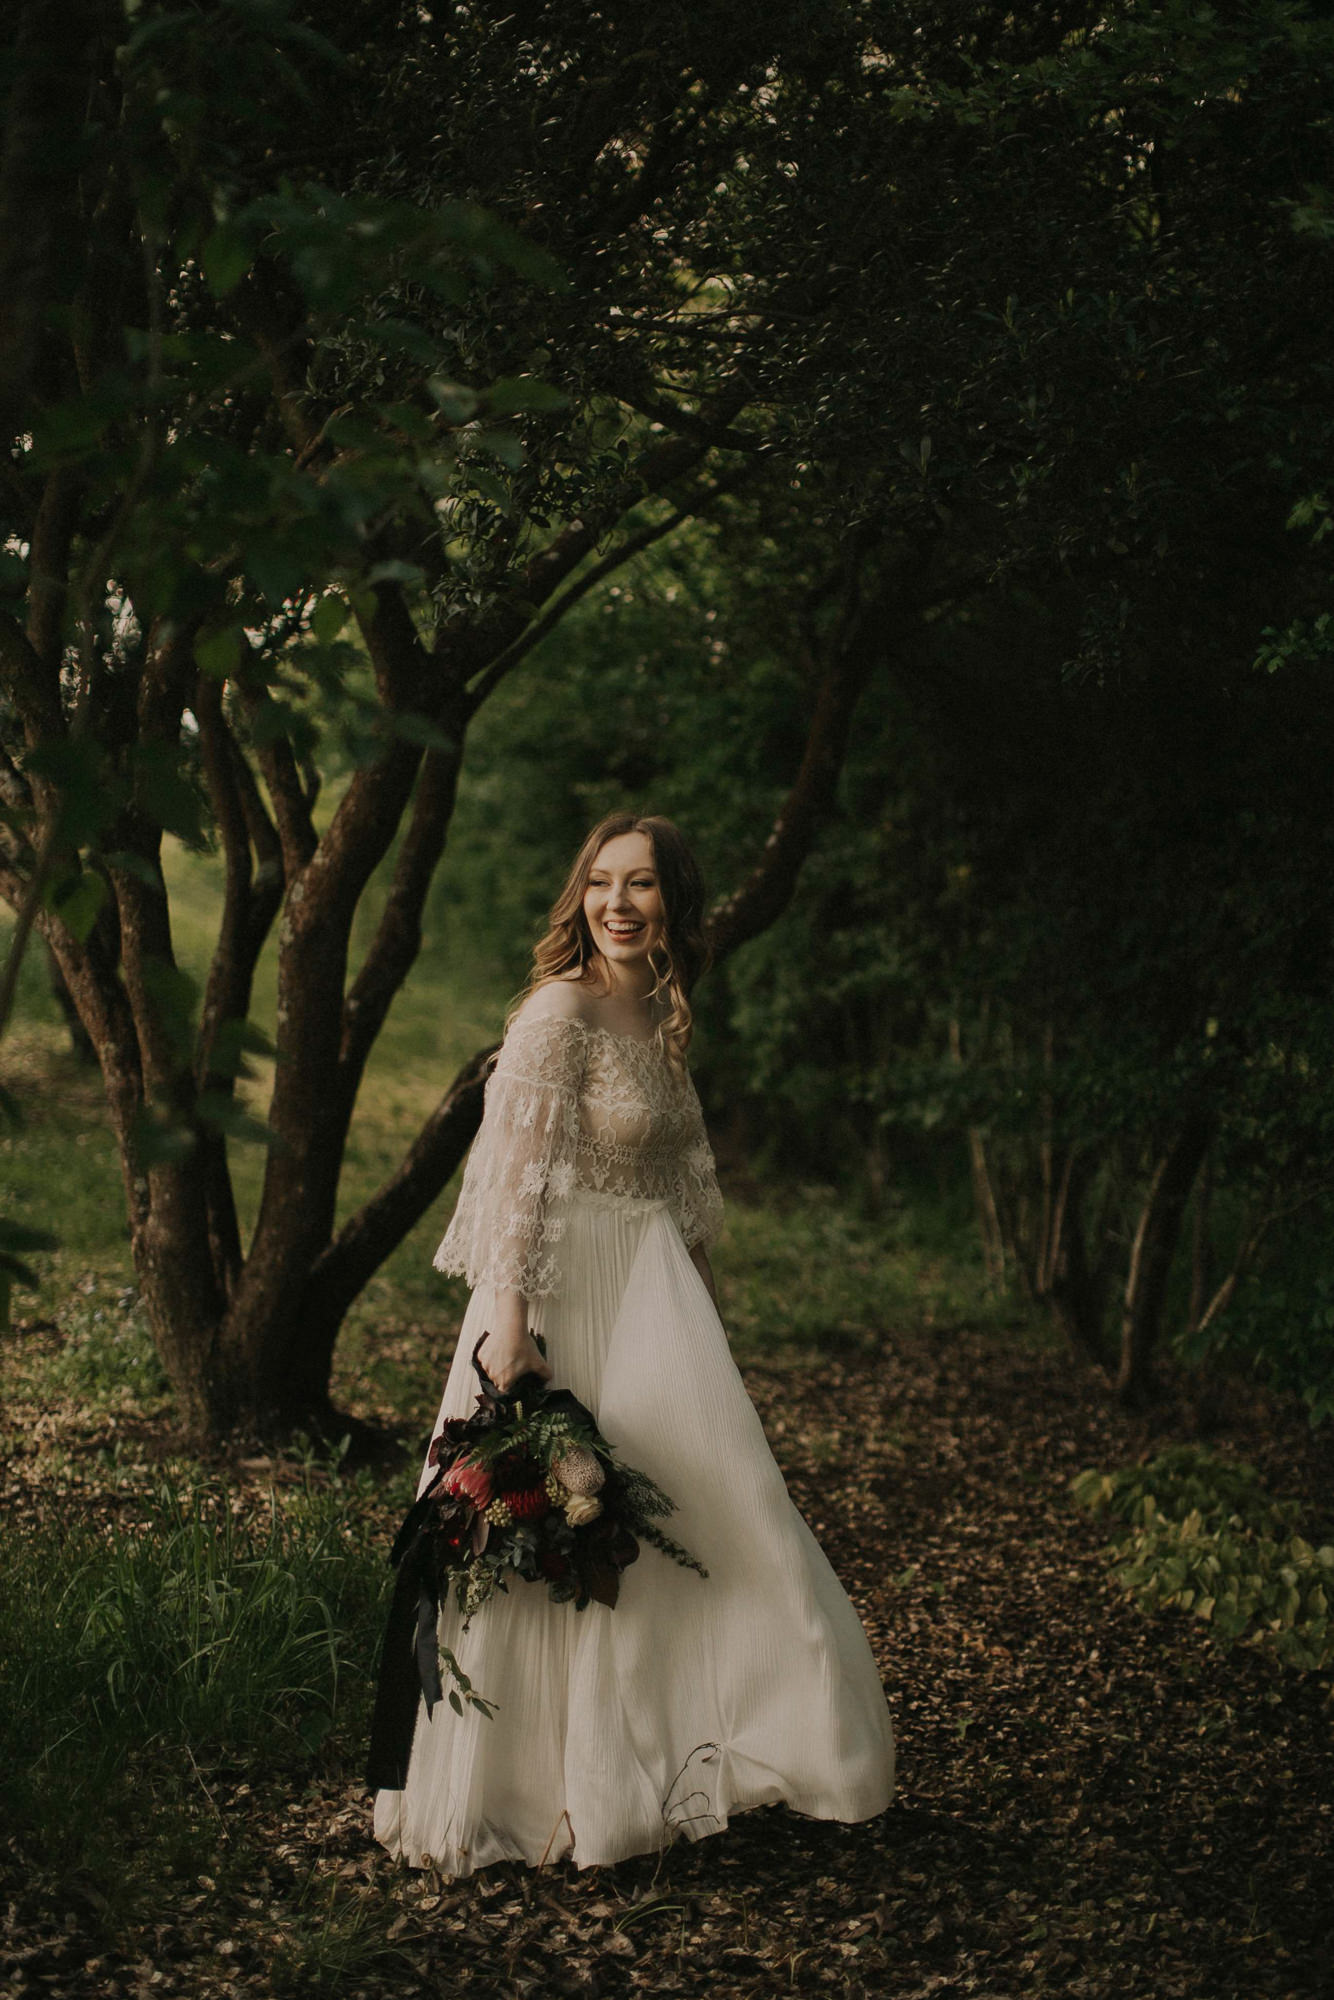 Bride in vintage dress in woods - photo by Dan O'Day